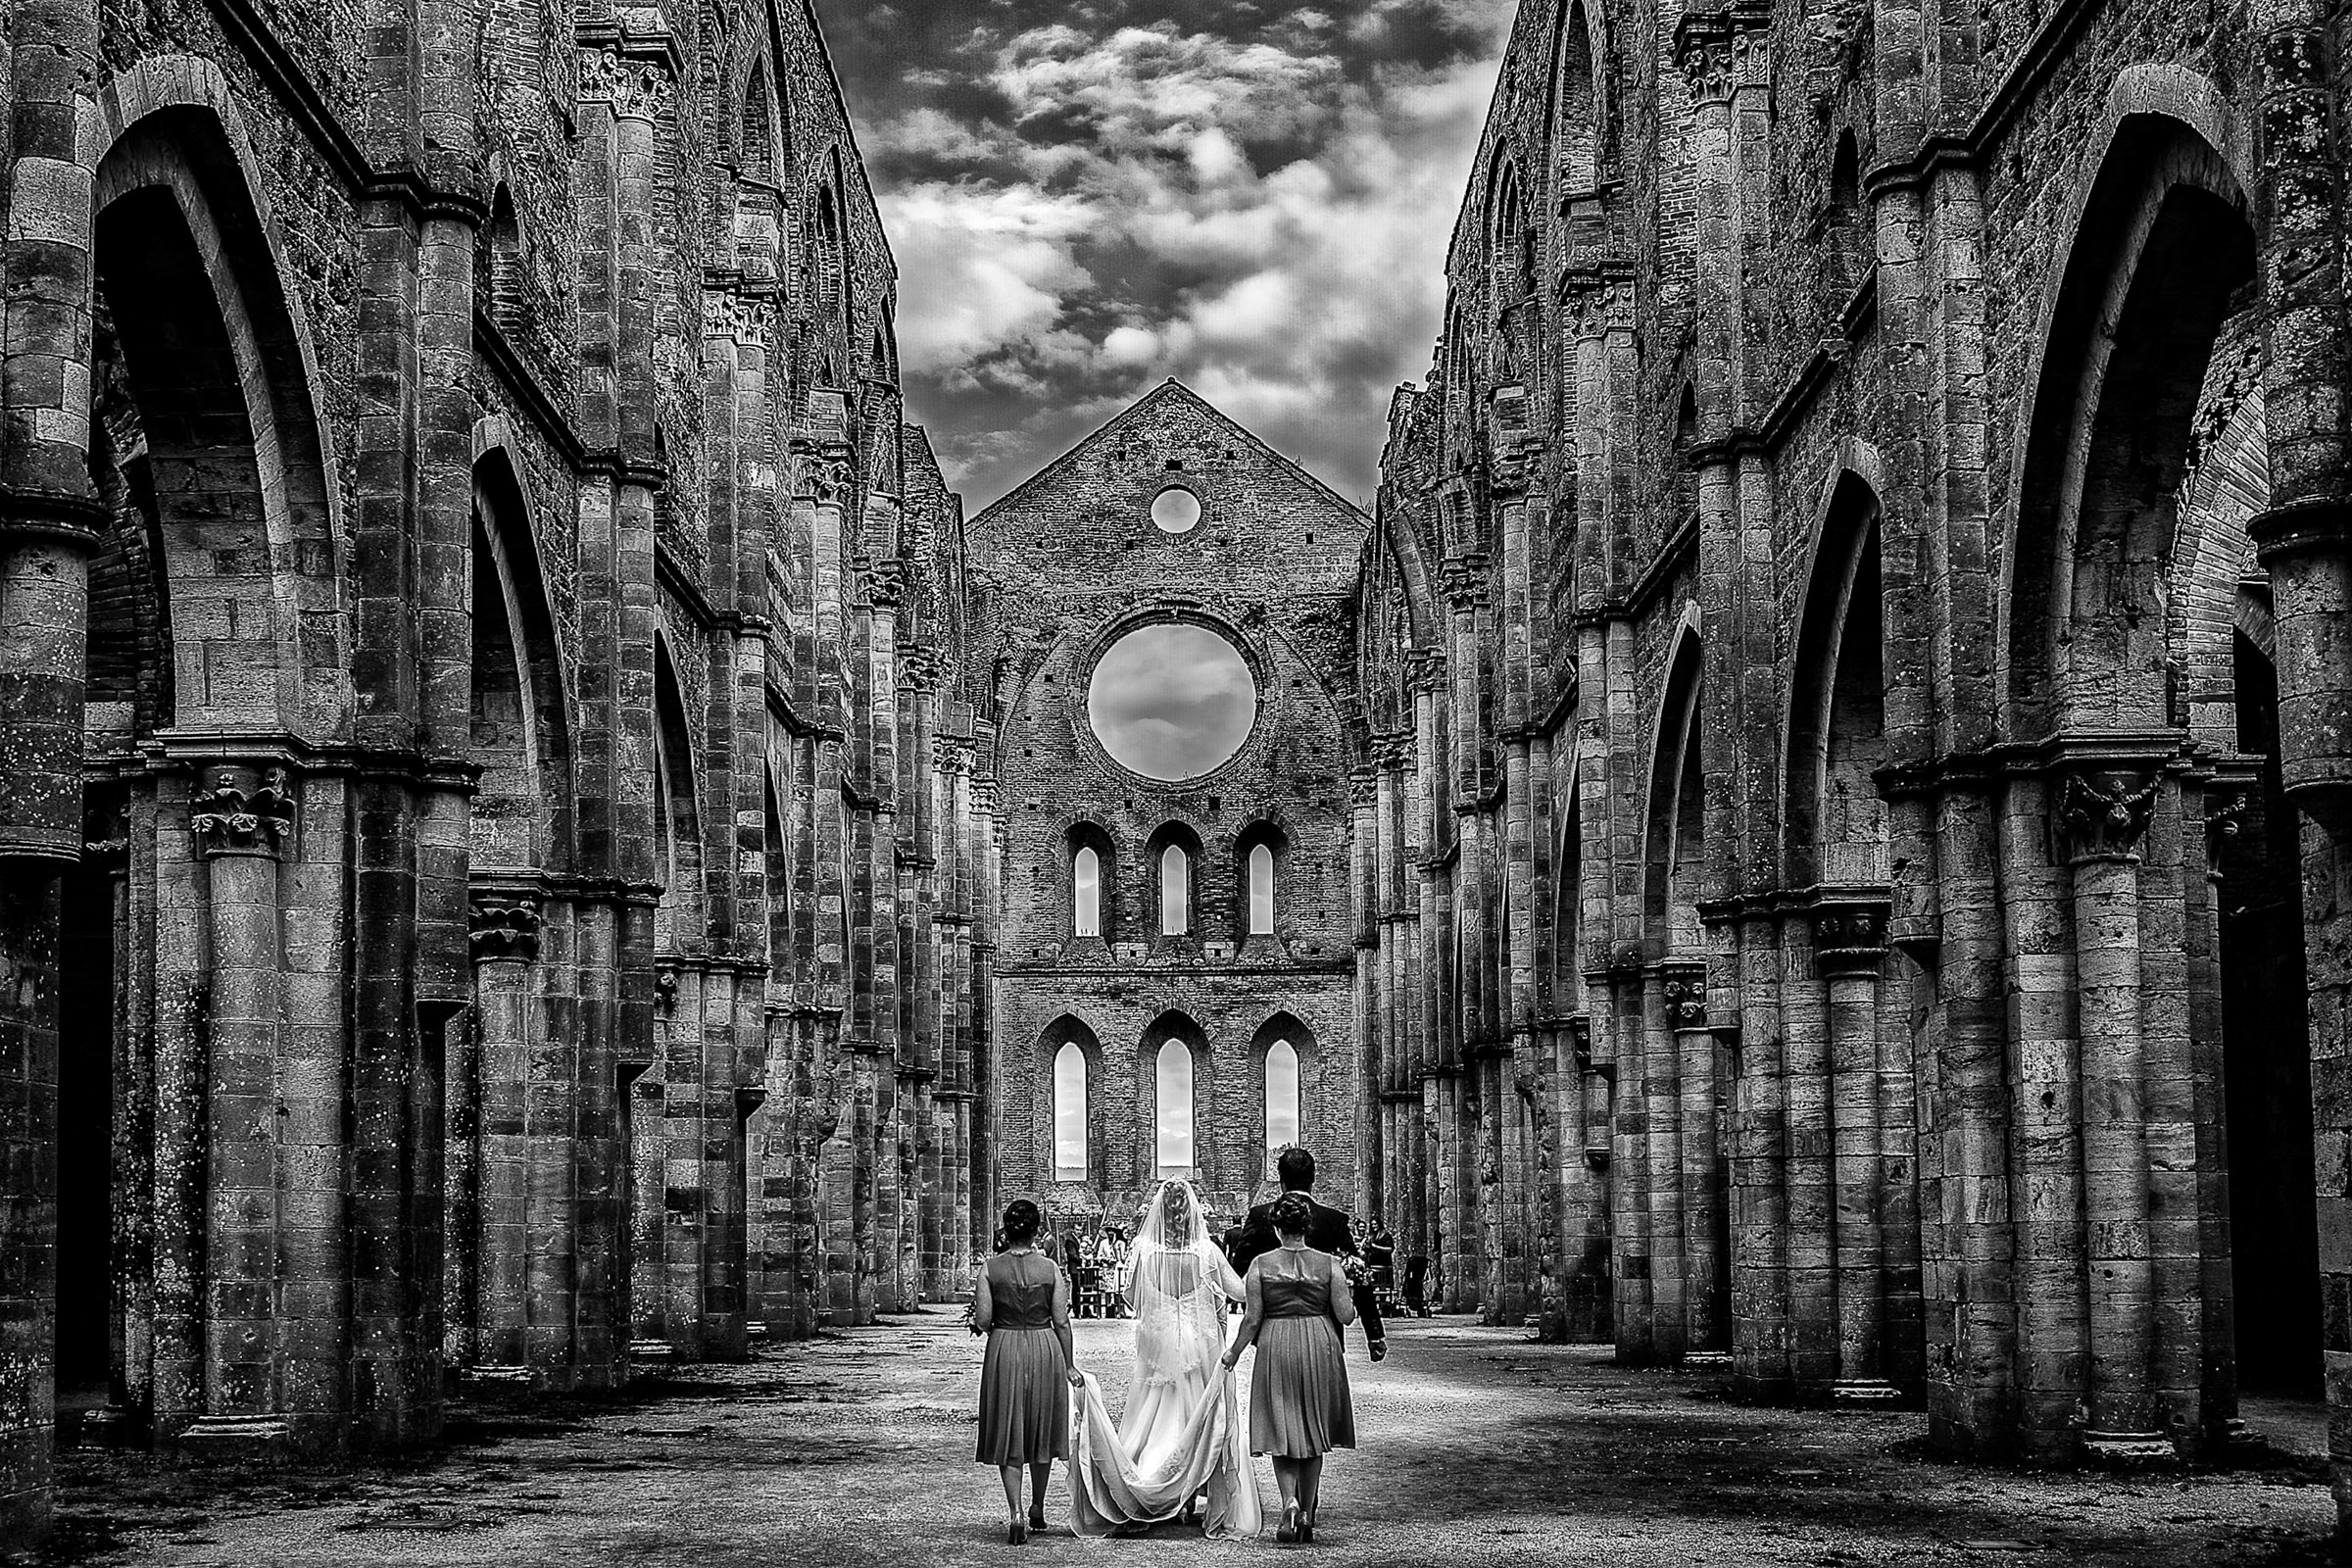 Bride and groom walk up aisle in under dramatic skies - photo by D2 Photography